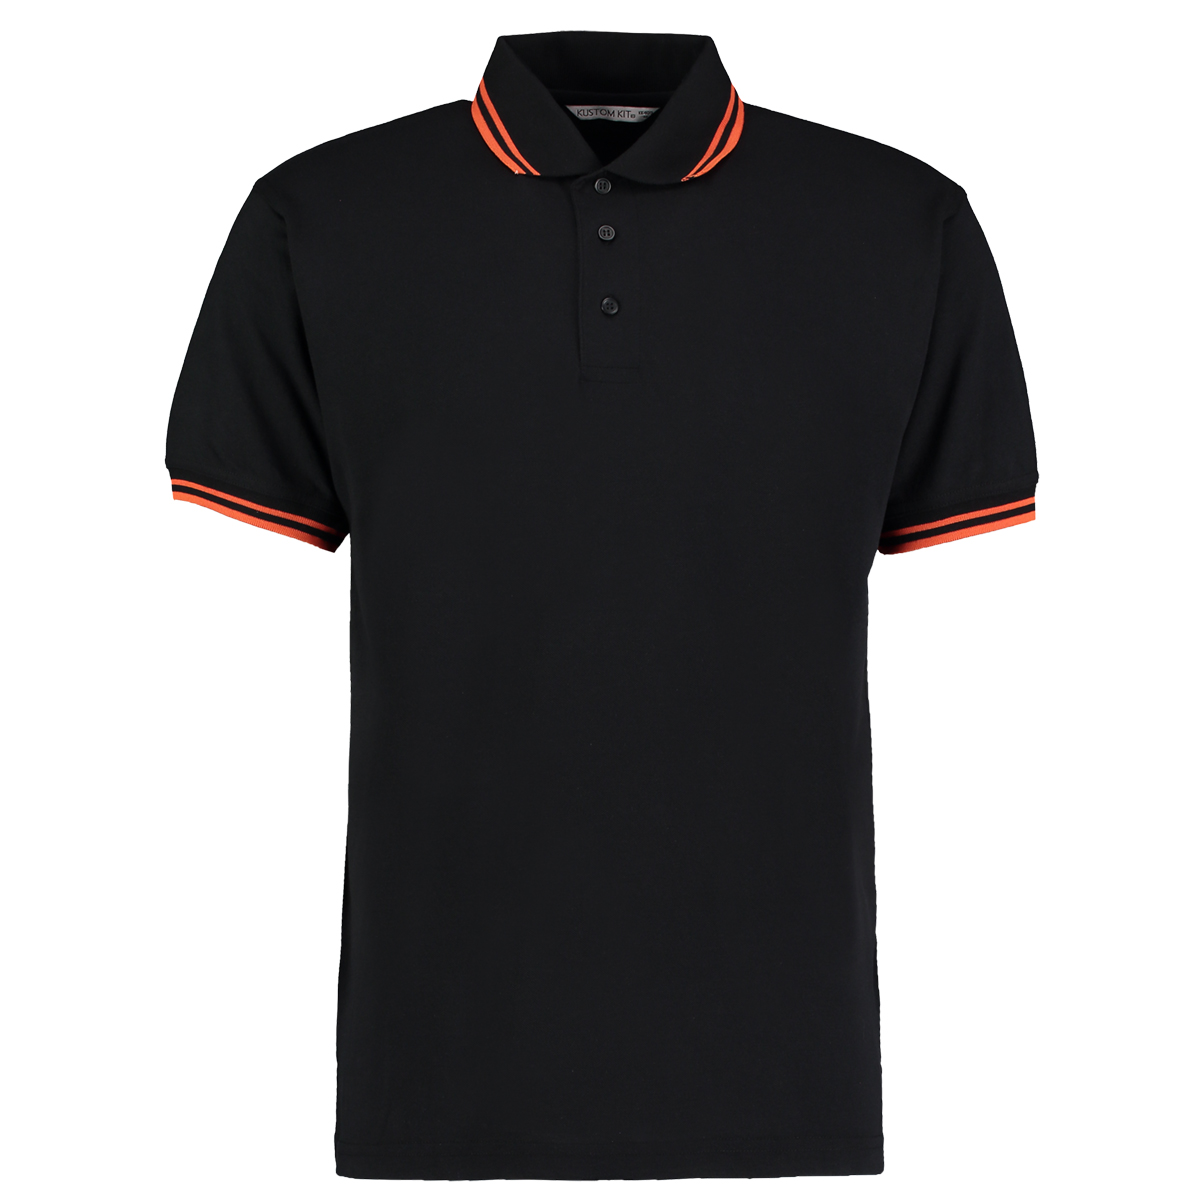 Black t shirt red collar - Click On A Colour To View Black Orange Black Red